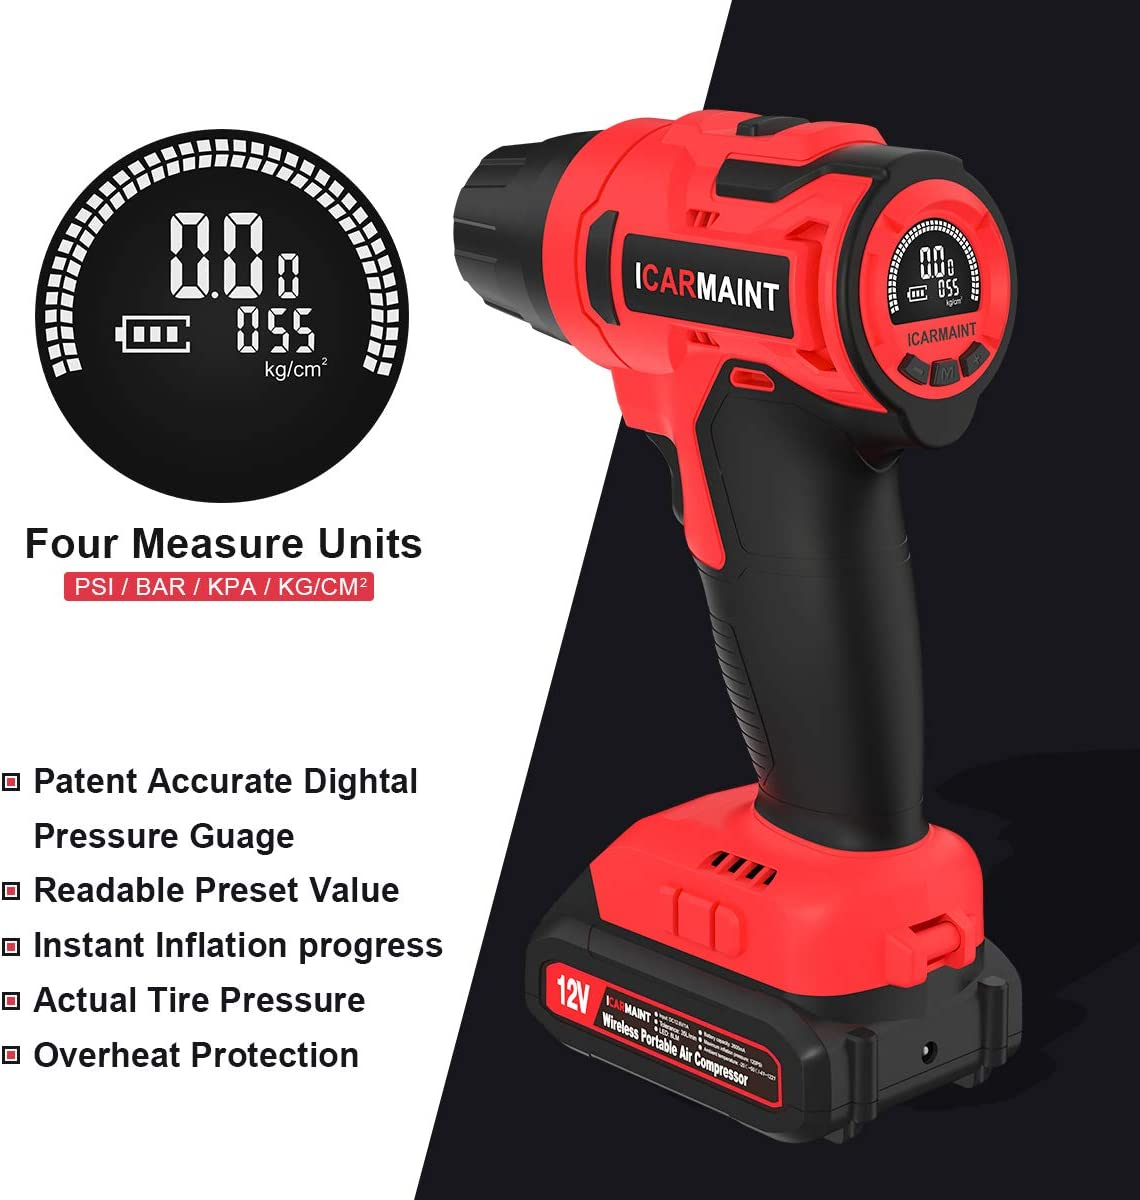 2600mAh 140PSI ICARMAINT Handheld Electric Compressor Car Tyre Inflator Electric Tyre Inflator Cordless Portable Air Compressor Rechargeable Li-ion Battery with Emergency LED Light and LCD HD Display